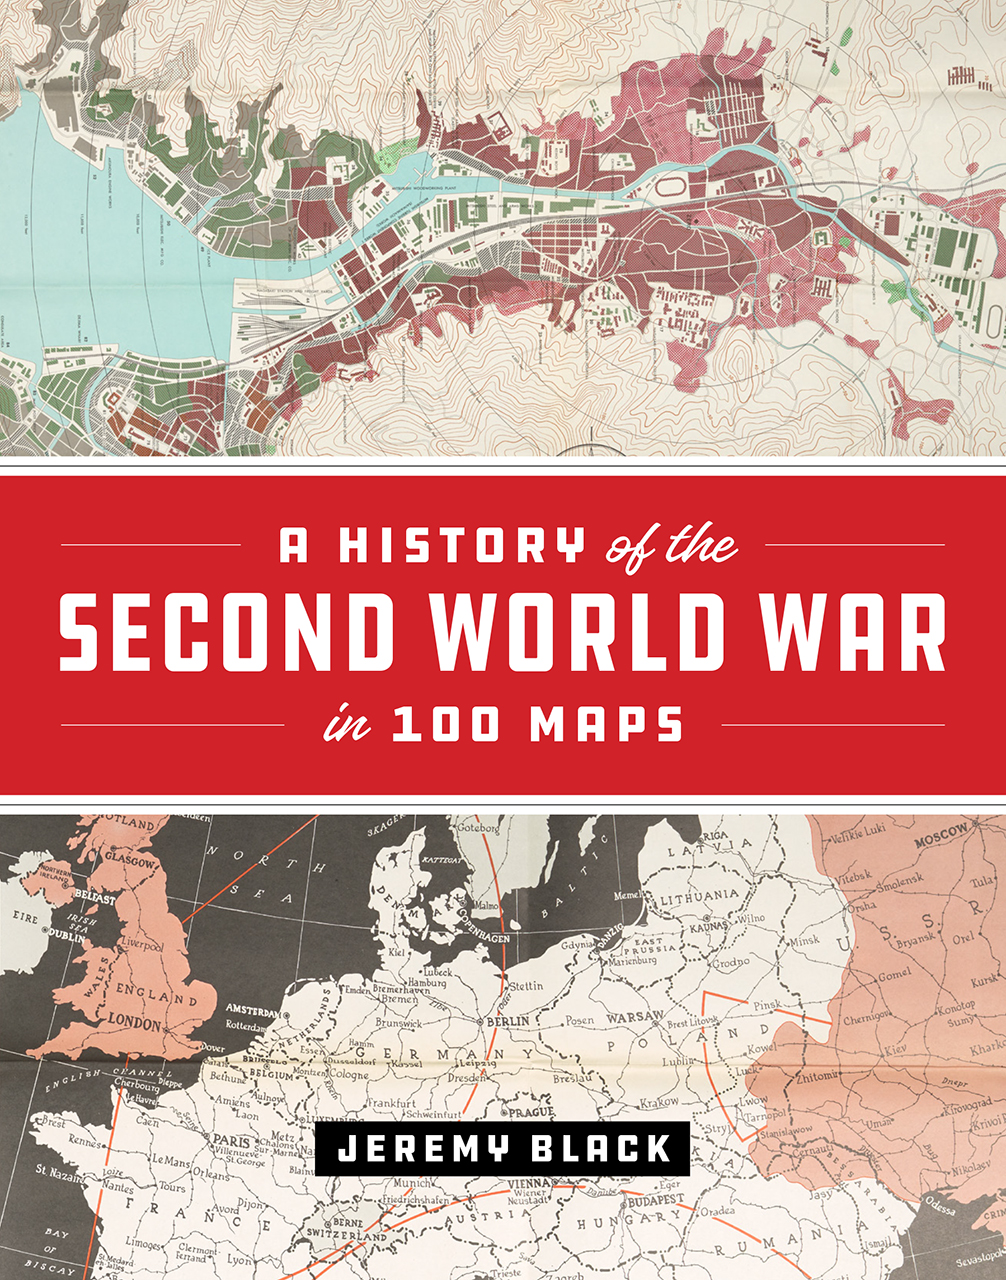 A History of the Second World War in 100 Maps